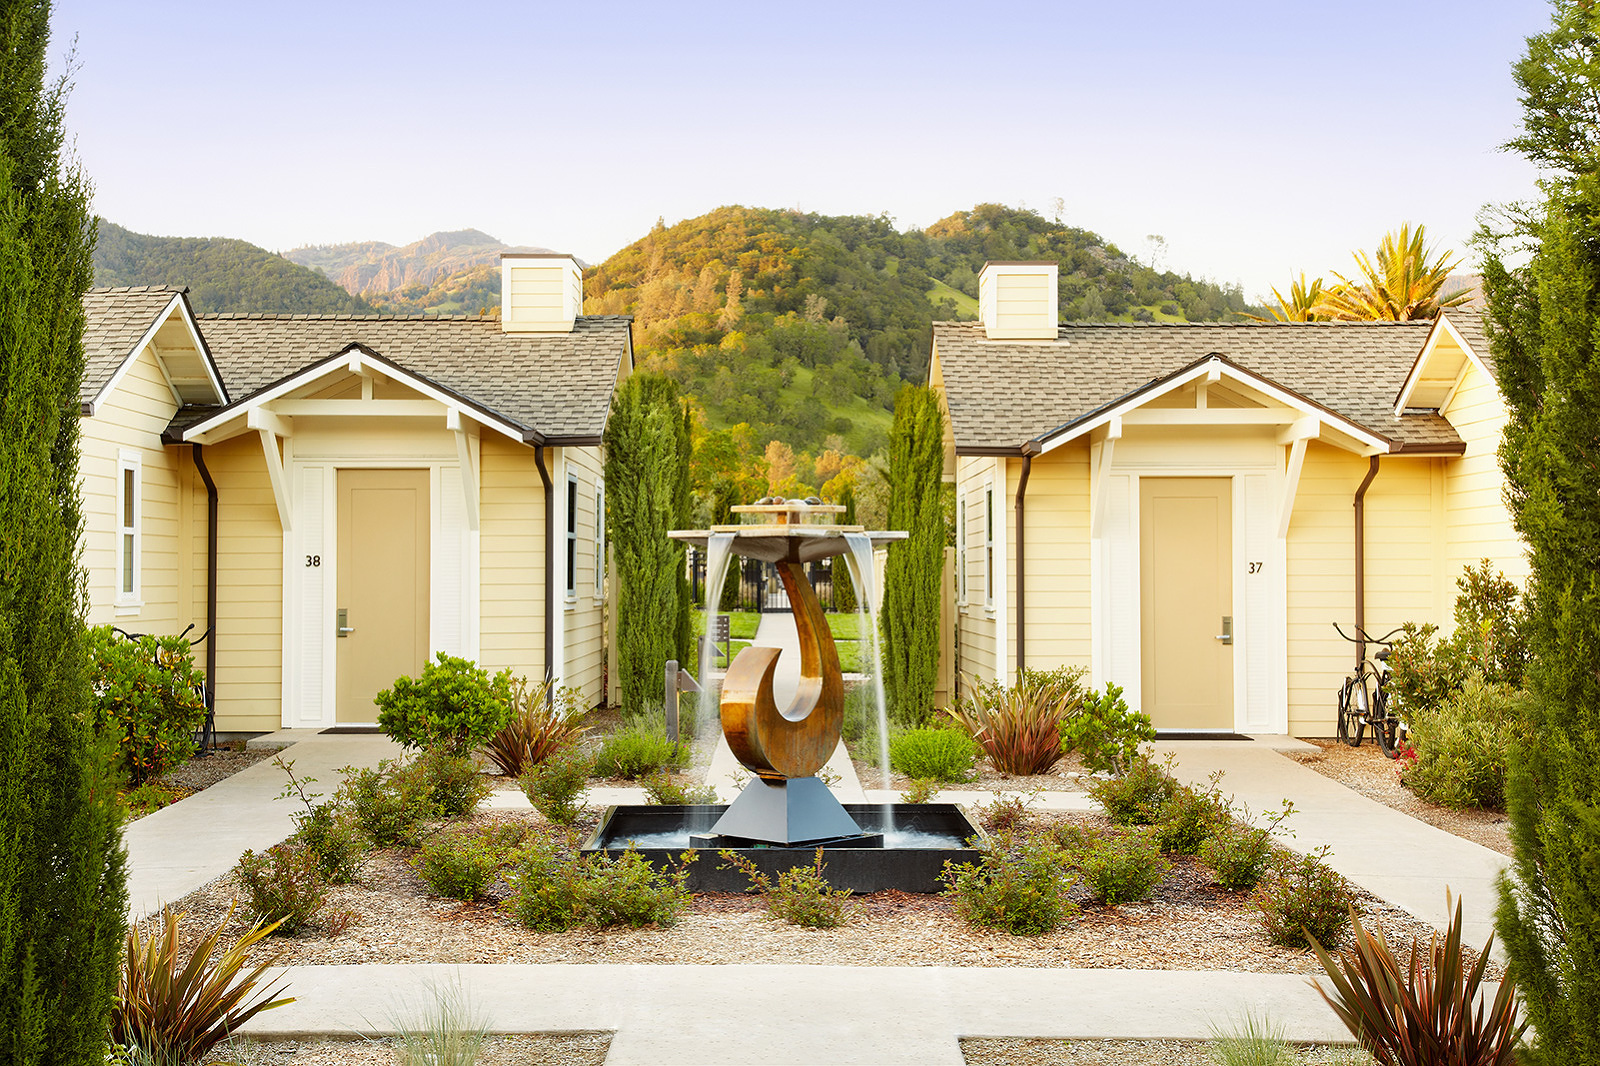 Cottages at Solage Resort, Napa, CA  | Trinette+Chris Photographers